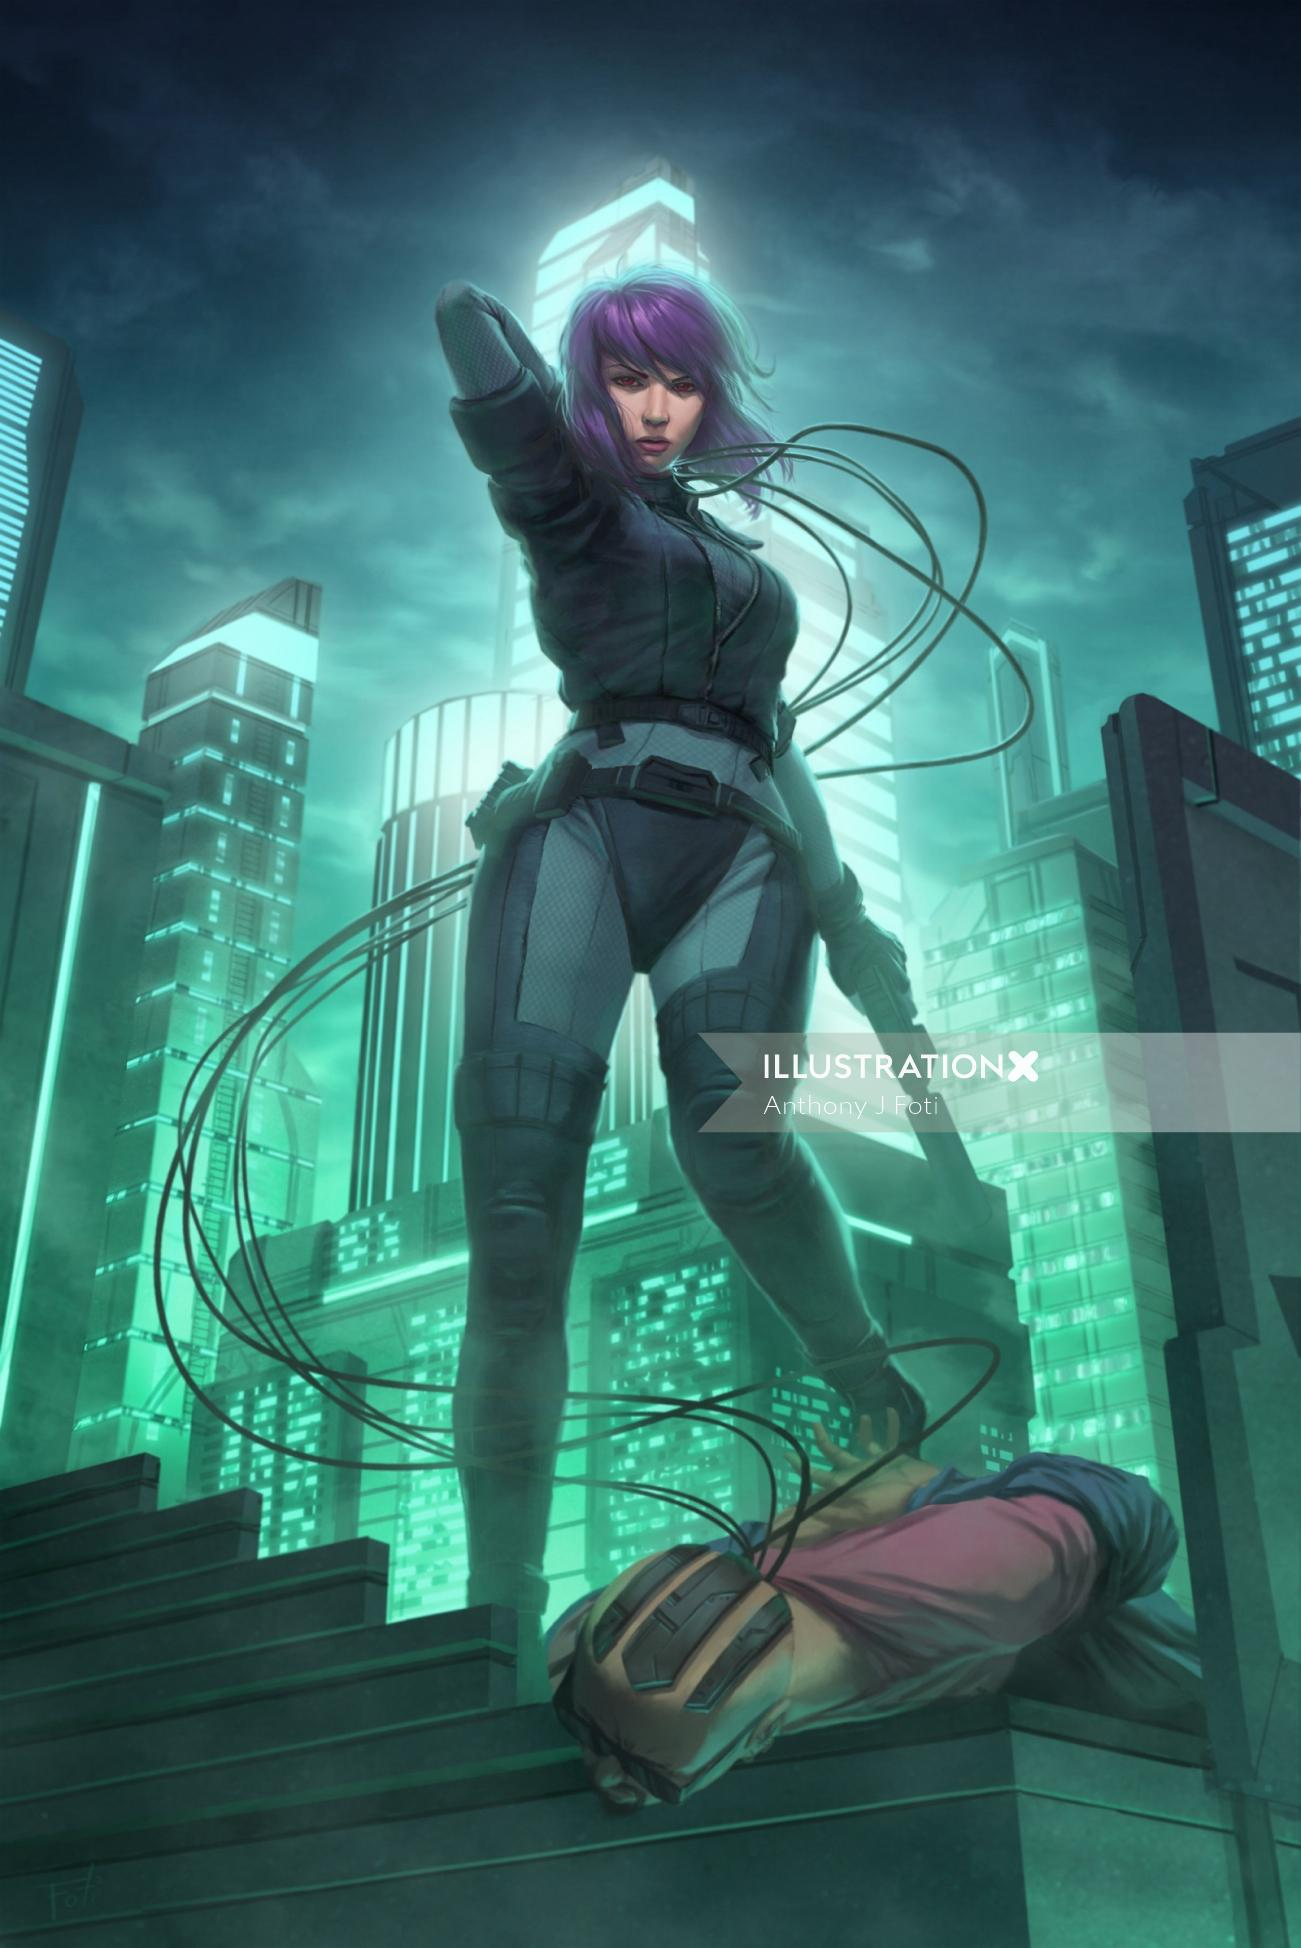 Major Kusanagi Character art by Anthony J Foti